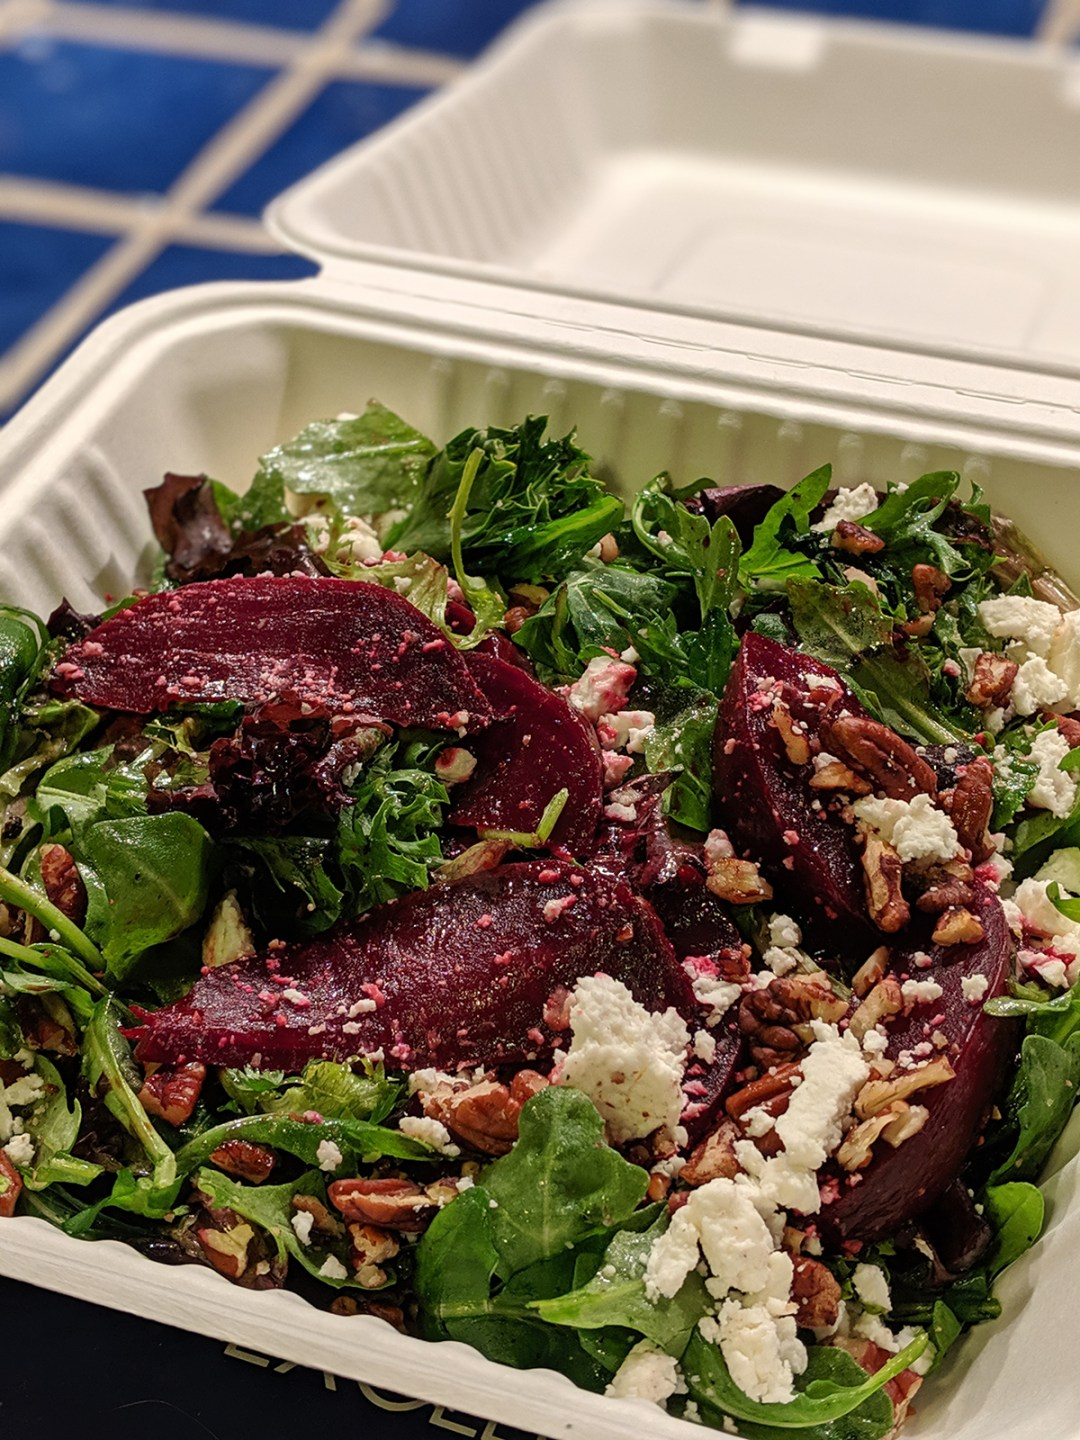 Generous portions of hearty, healthy food will likely attract a loyal following; photo by Robin Catalano.